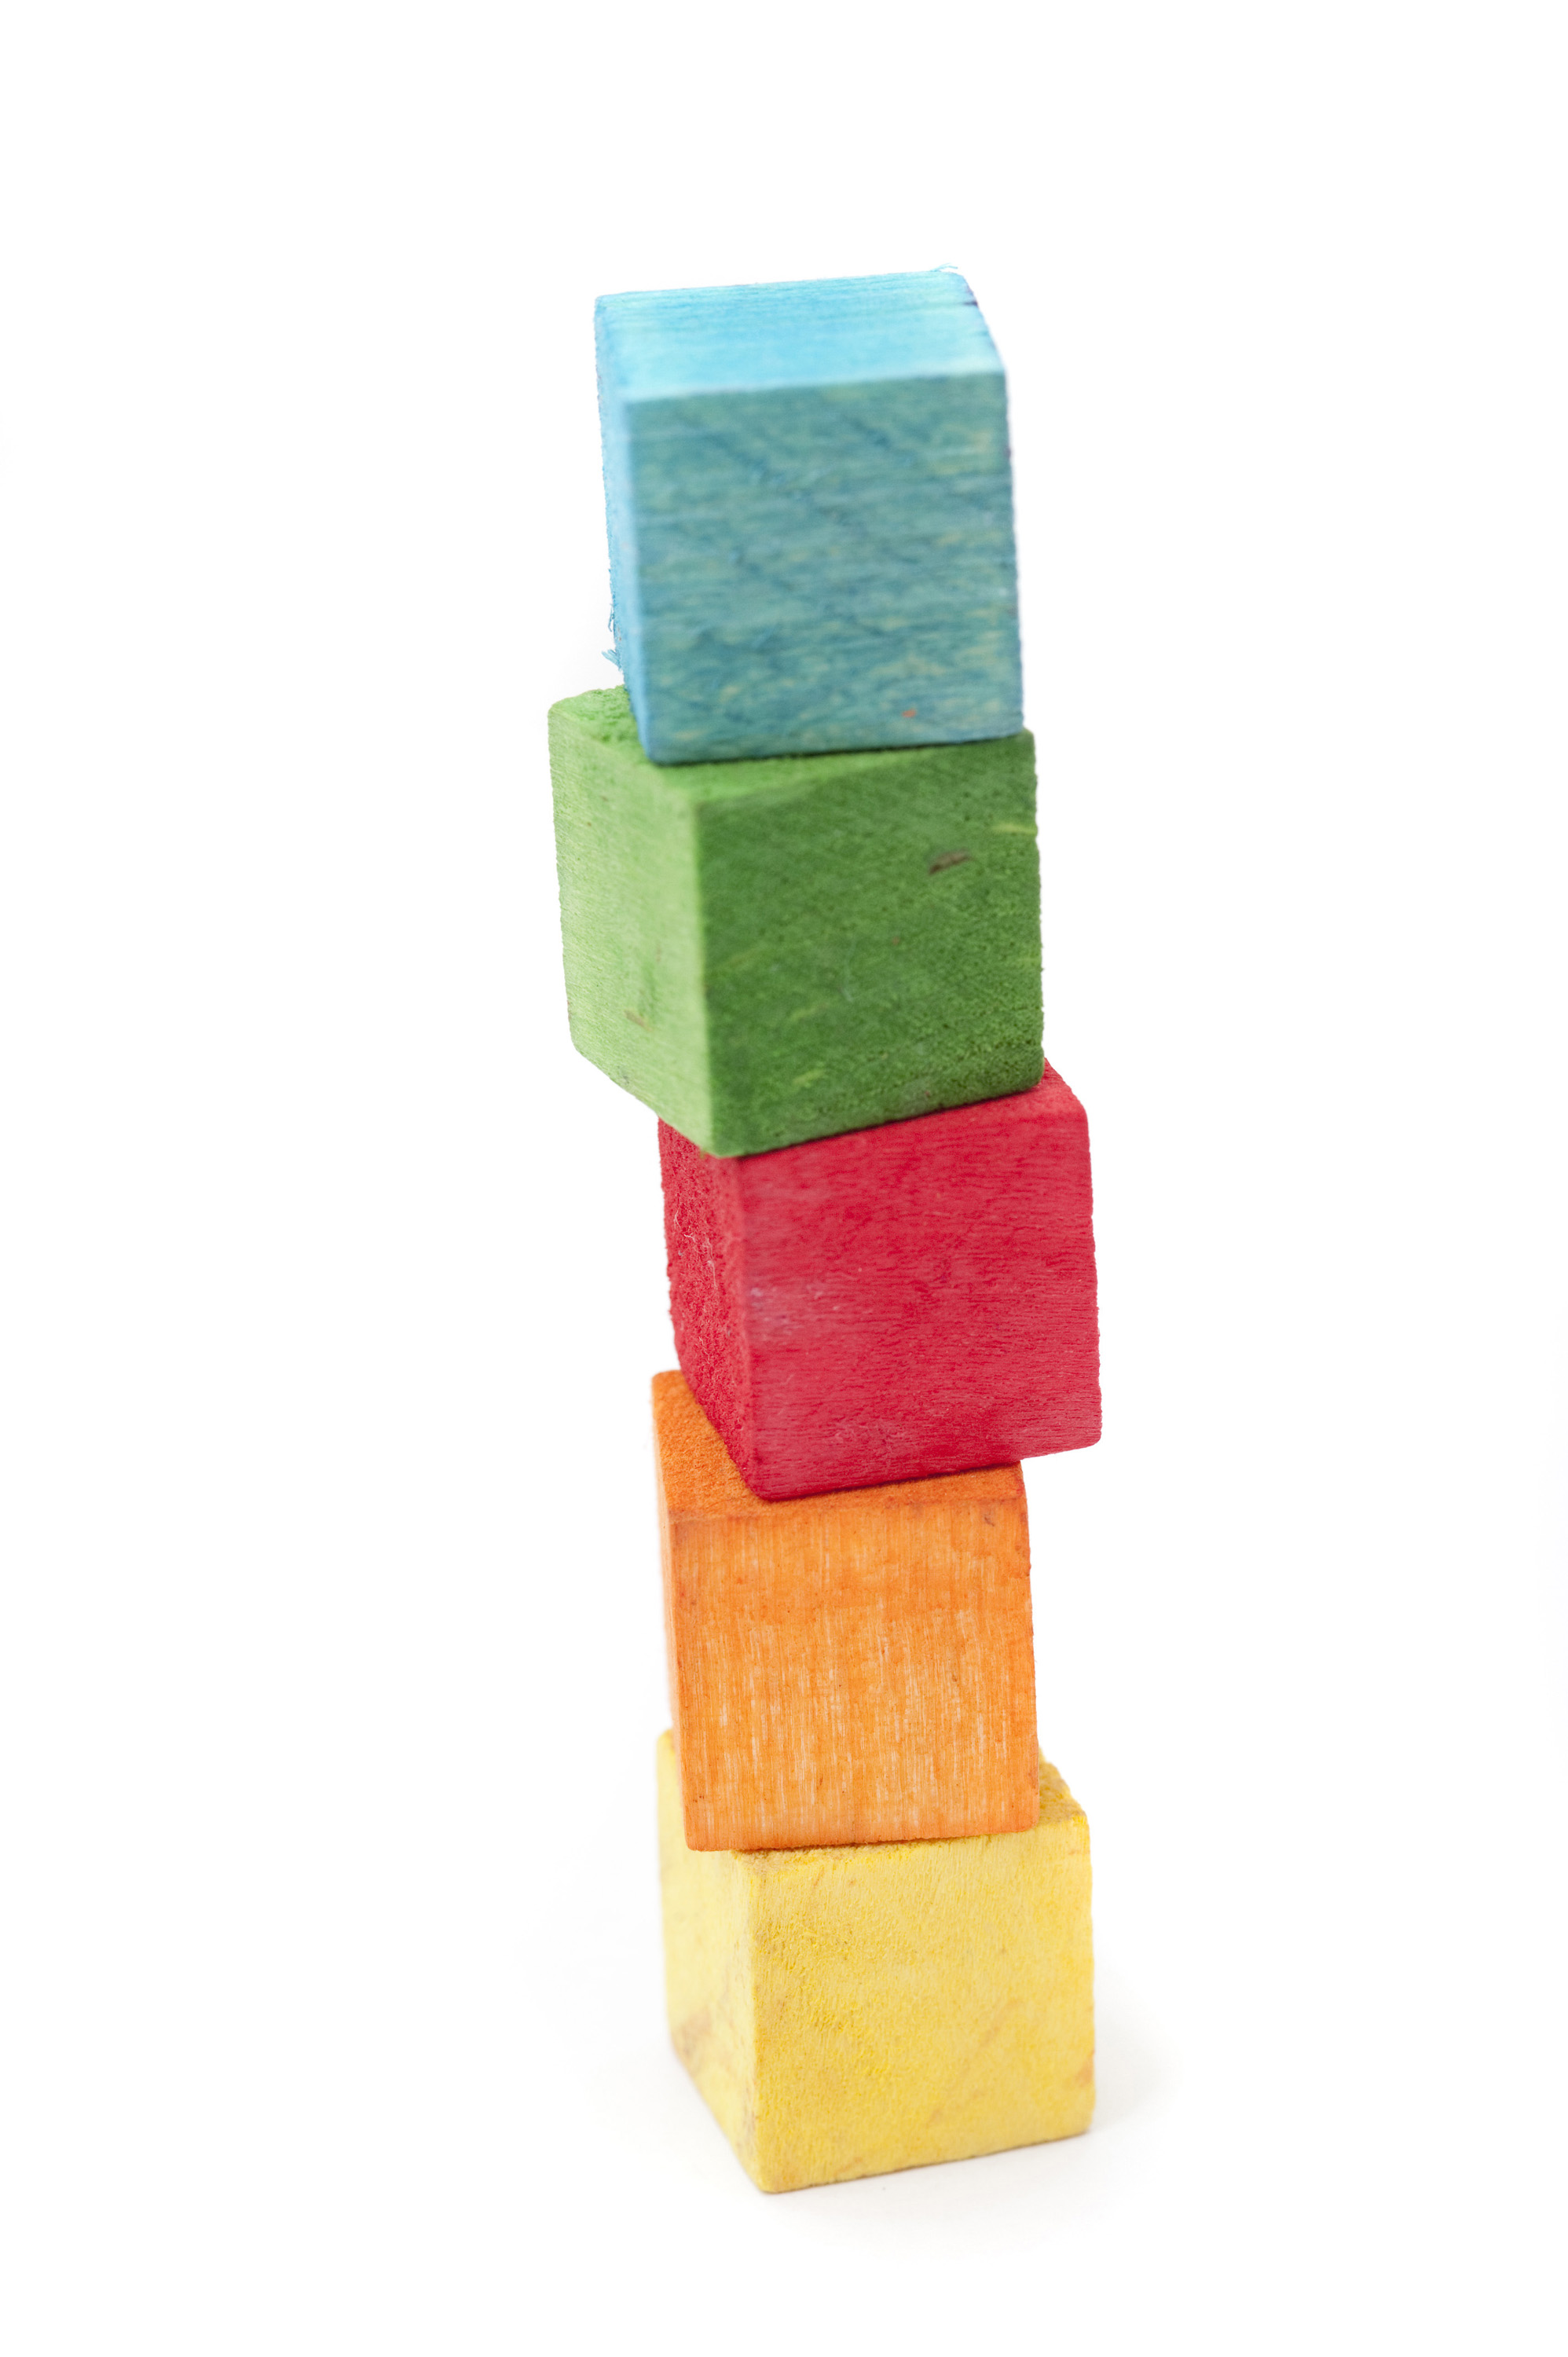 Free image of A tower of wooden building blocks